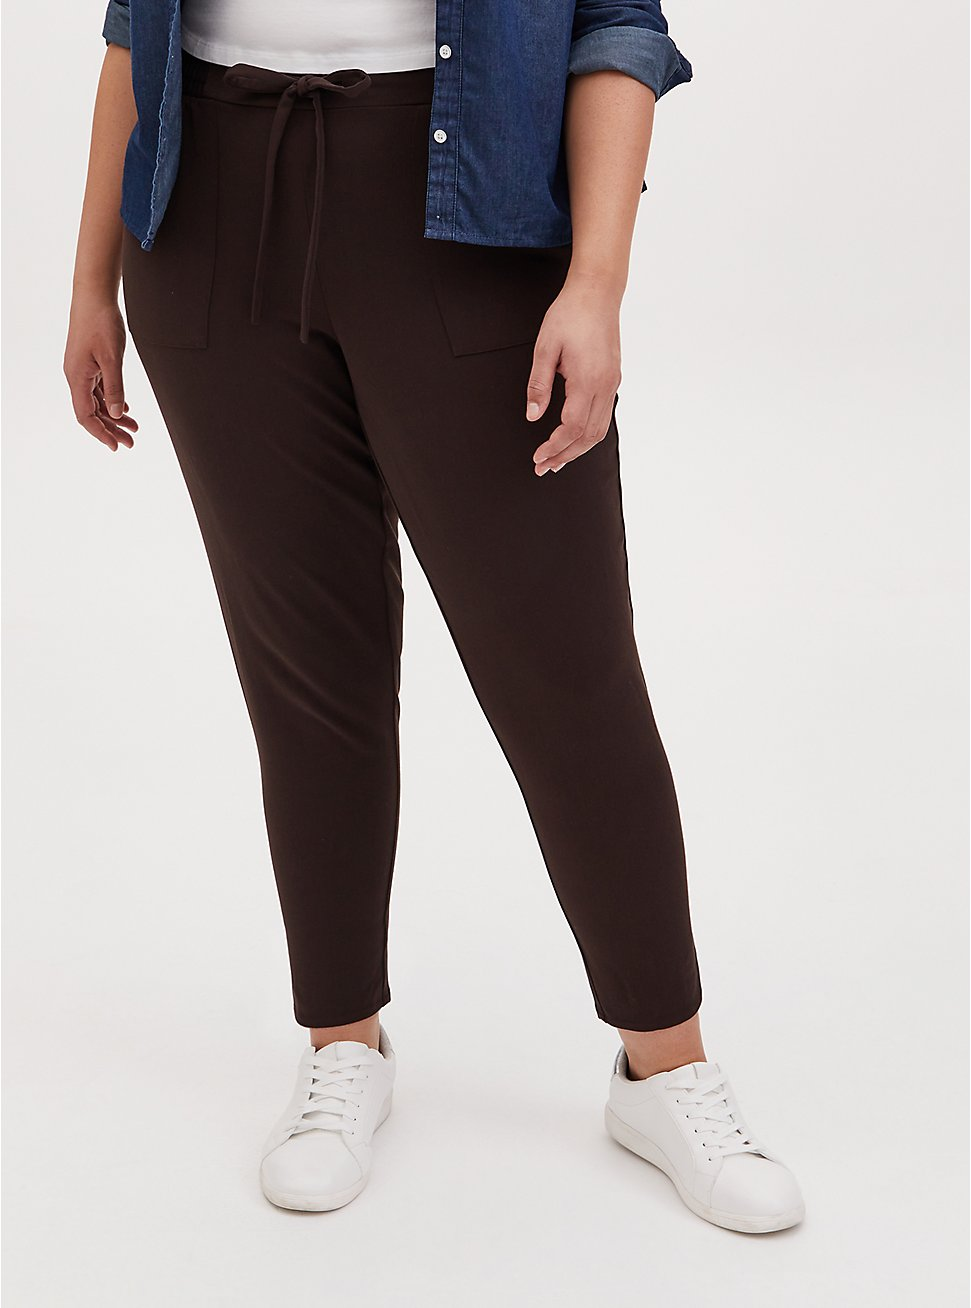 Chocolate Brown Twill Drawstring Tapered Pant , JAVA, hi-res